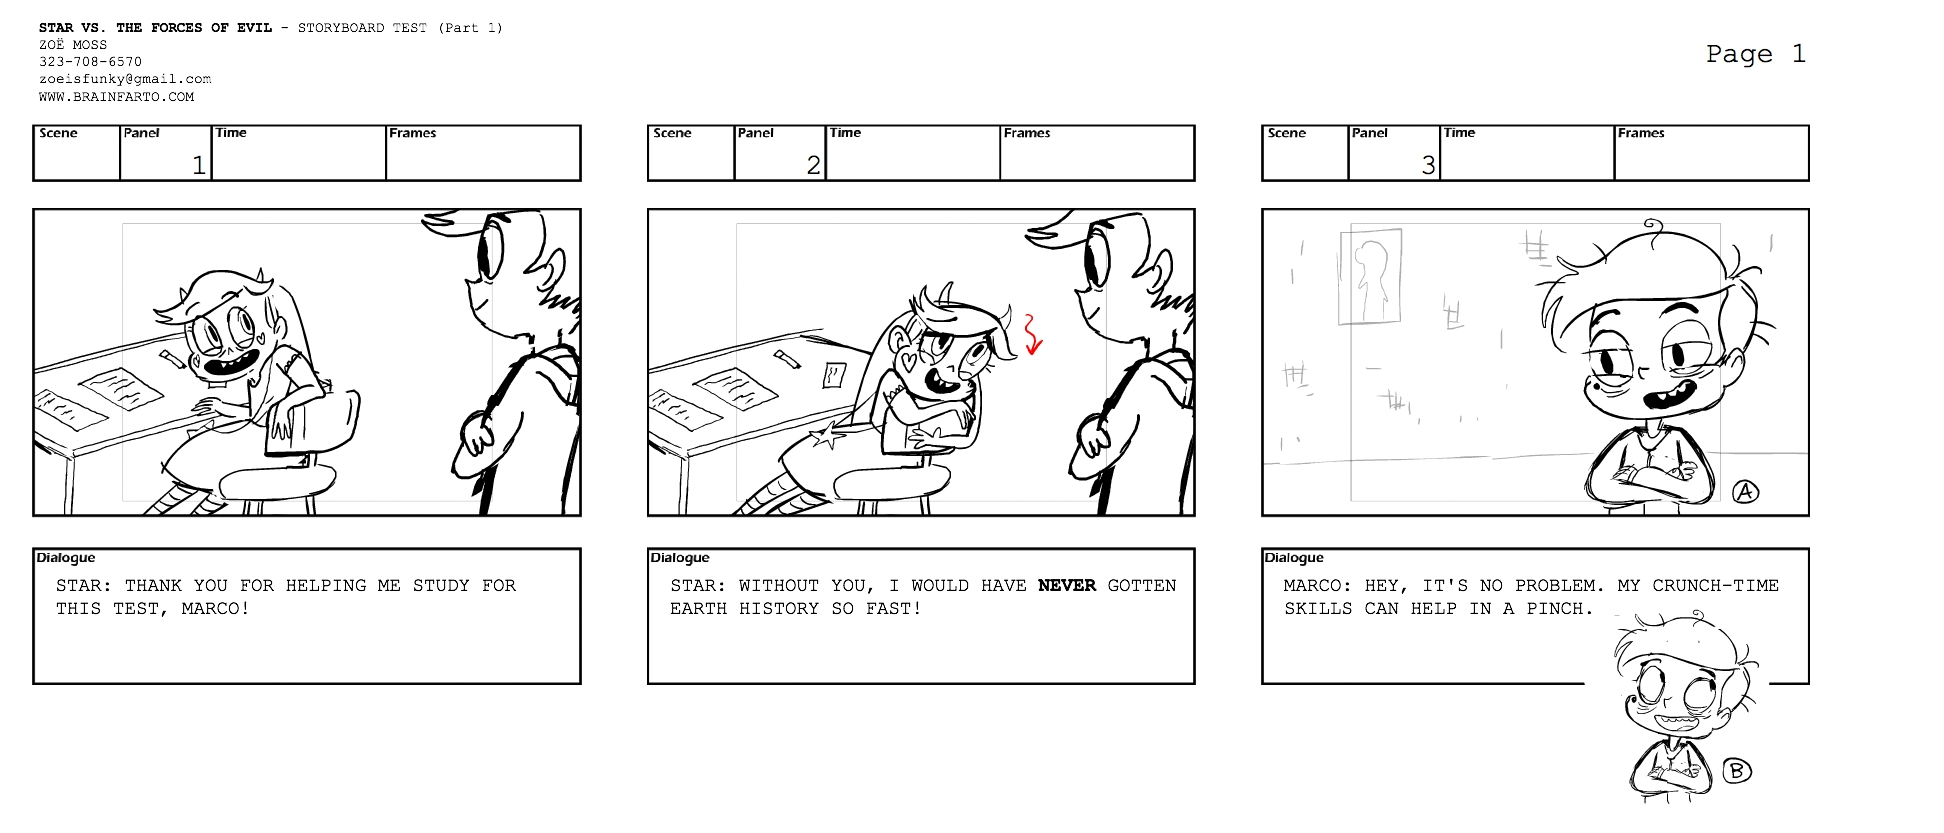 Star Vs The Forces of Evil Storyboard Test